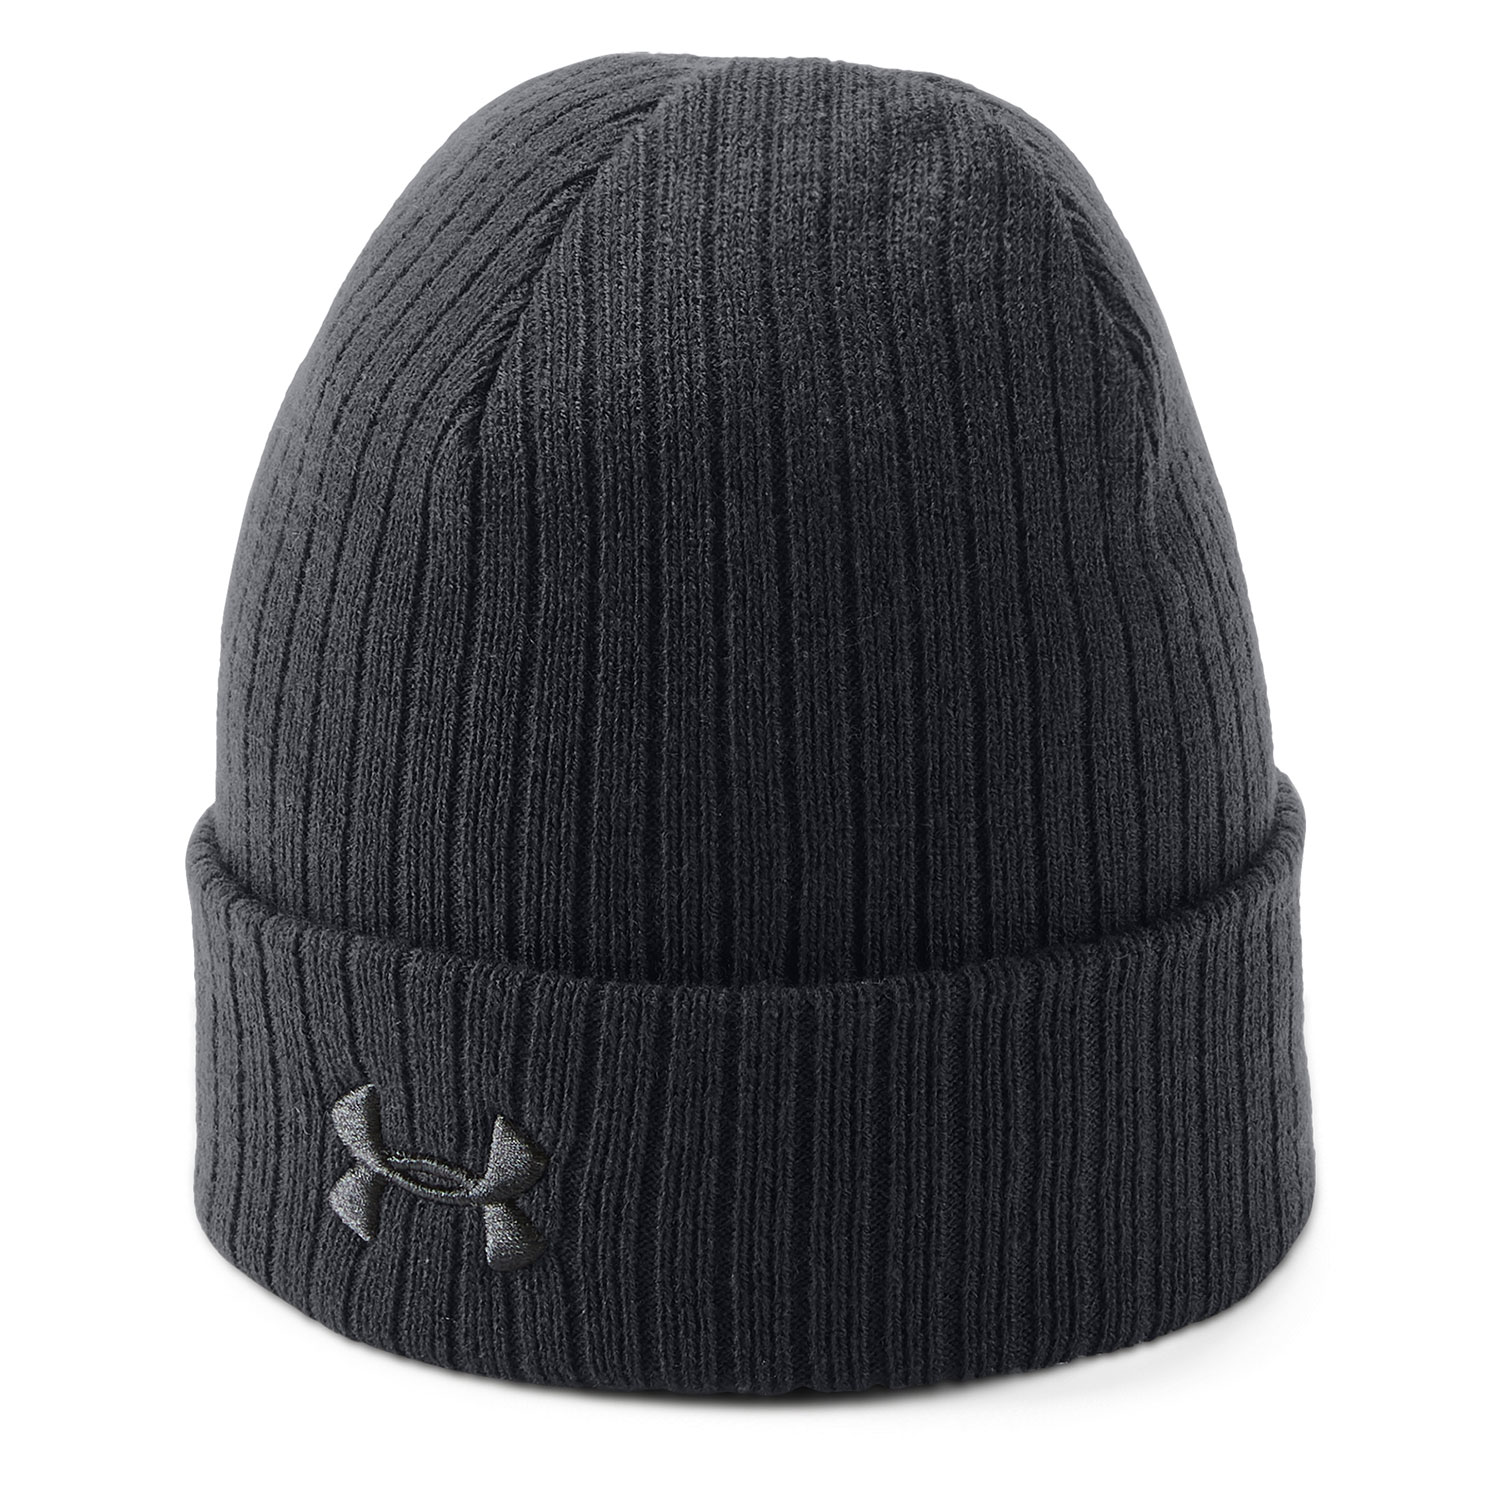 Under Armour Tactical Stealth 2.0 Beanie 438b5e53bcc